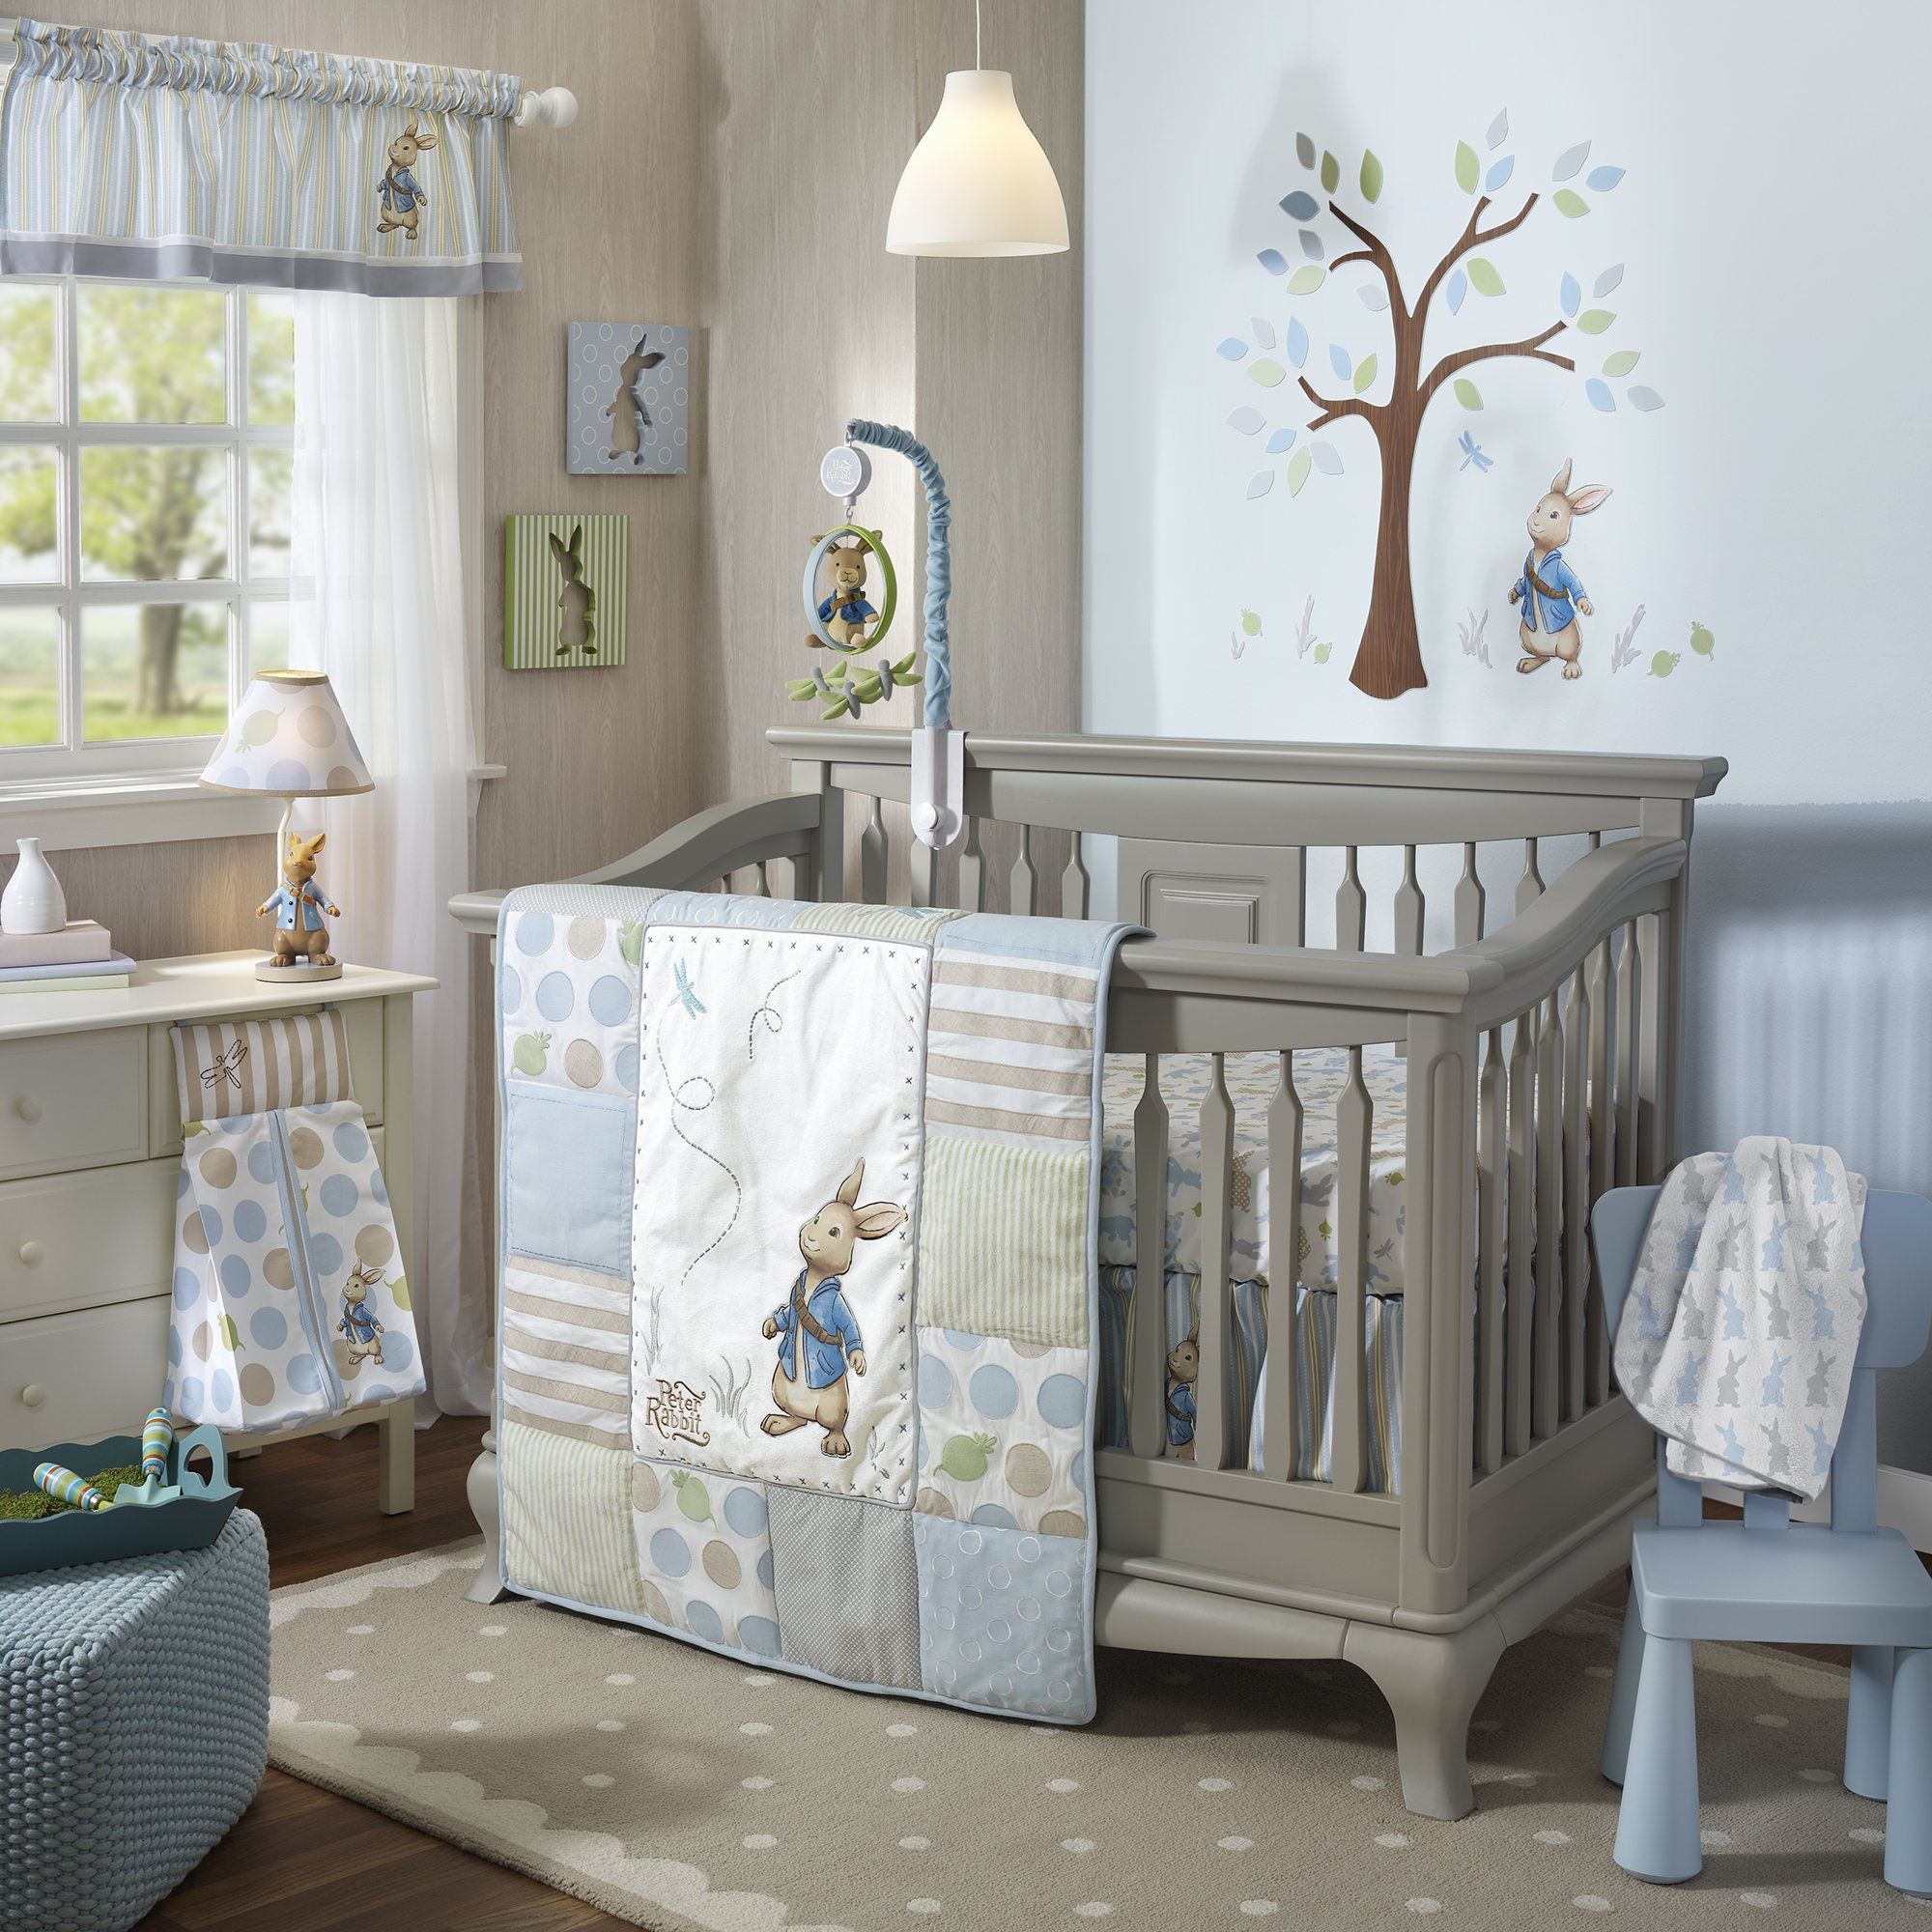 Lambs And Ivy Peter Rabbit Baby Bedding And Decor Peter Rabbit